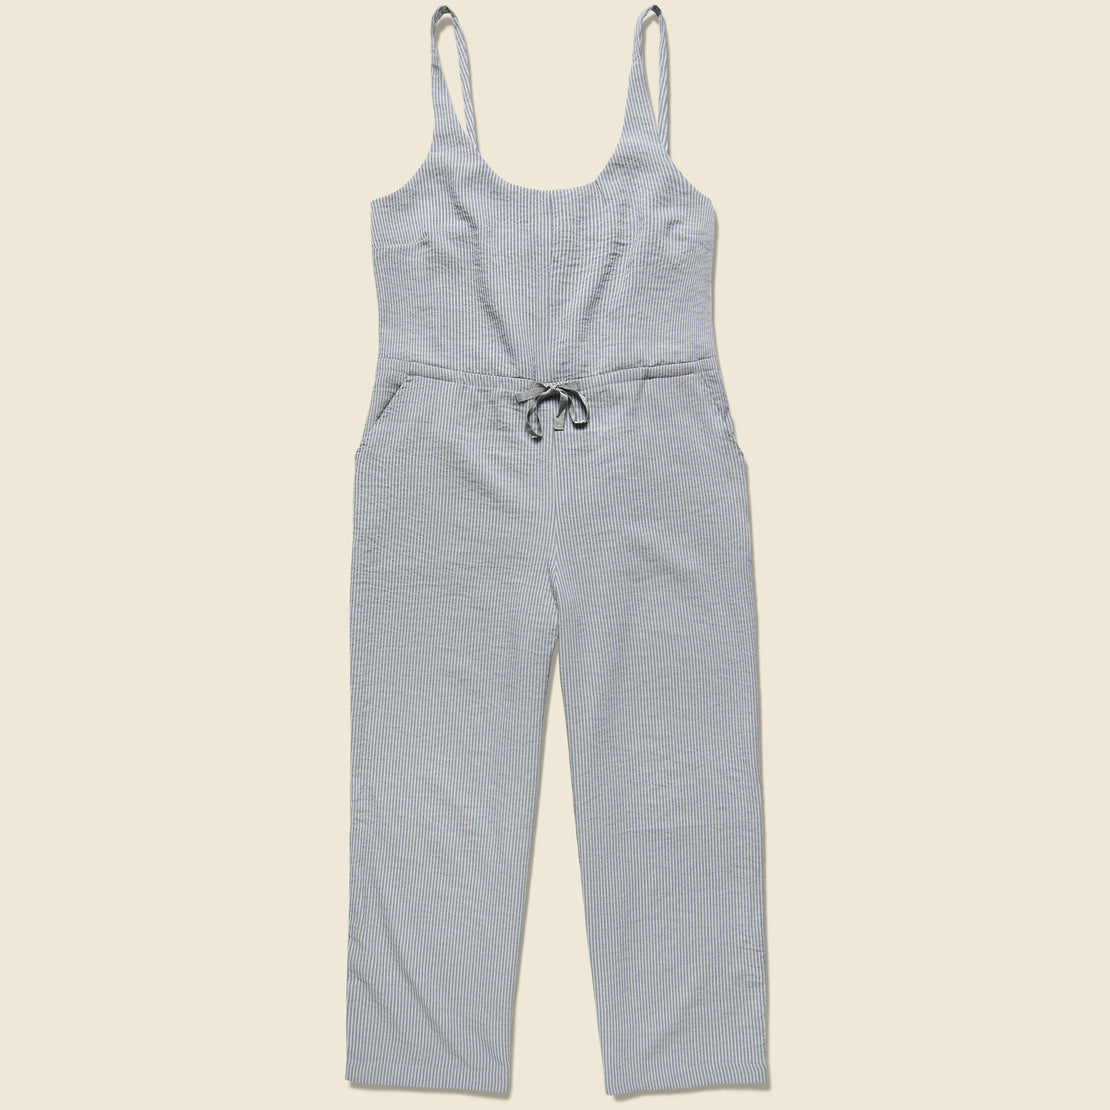 Bridge & Burn Otto Jumpsuit - Grey Seersucker